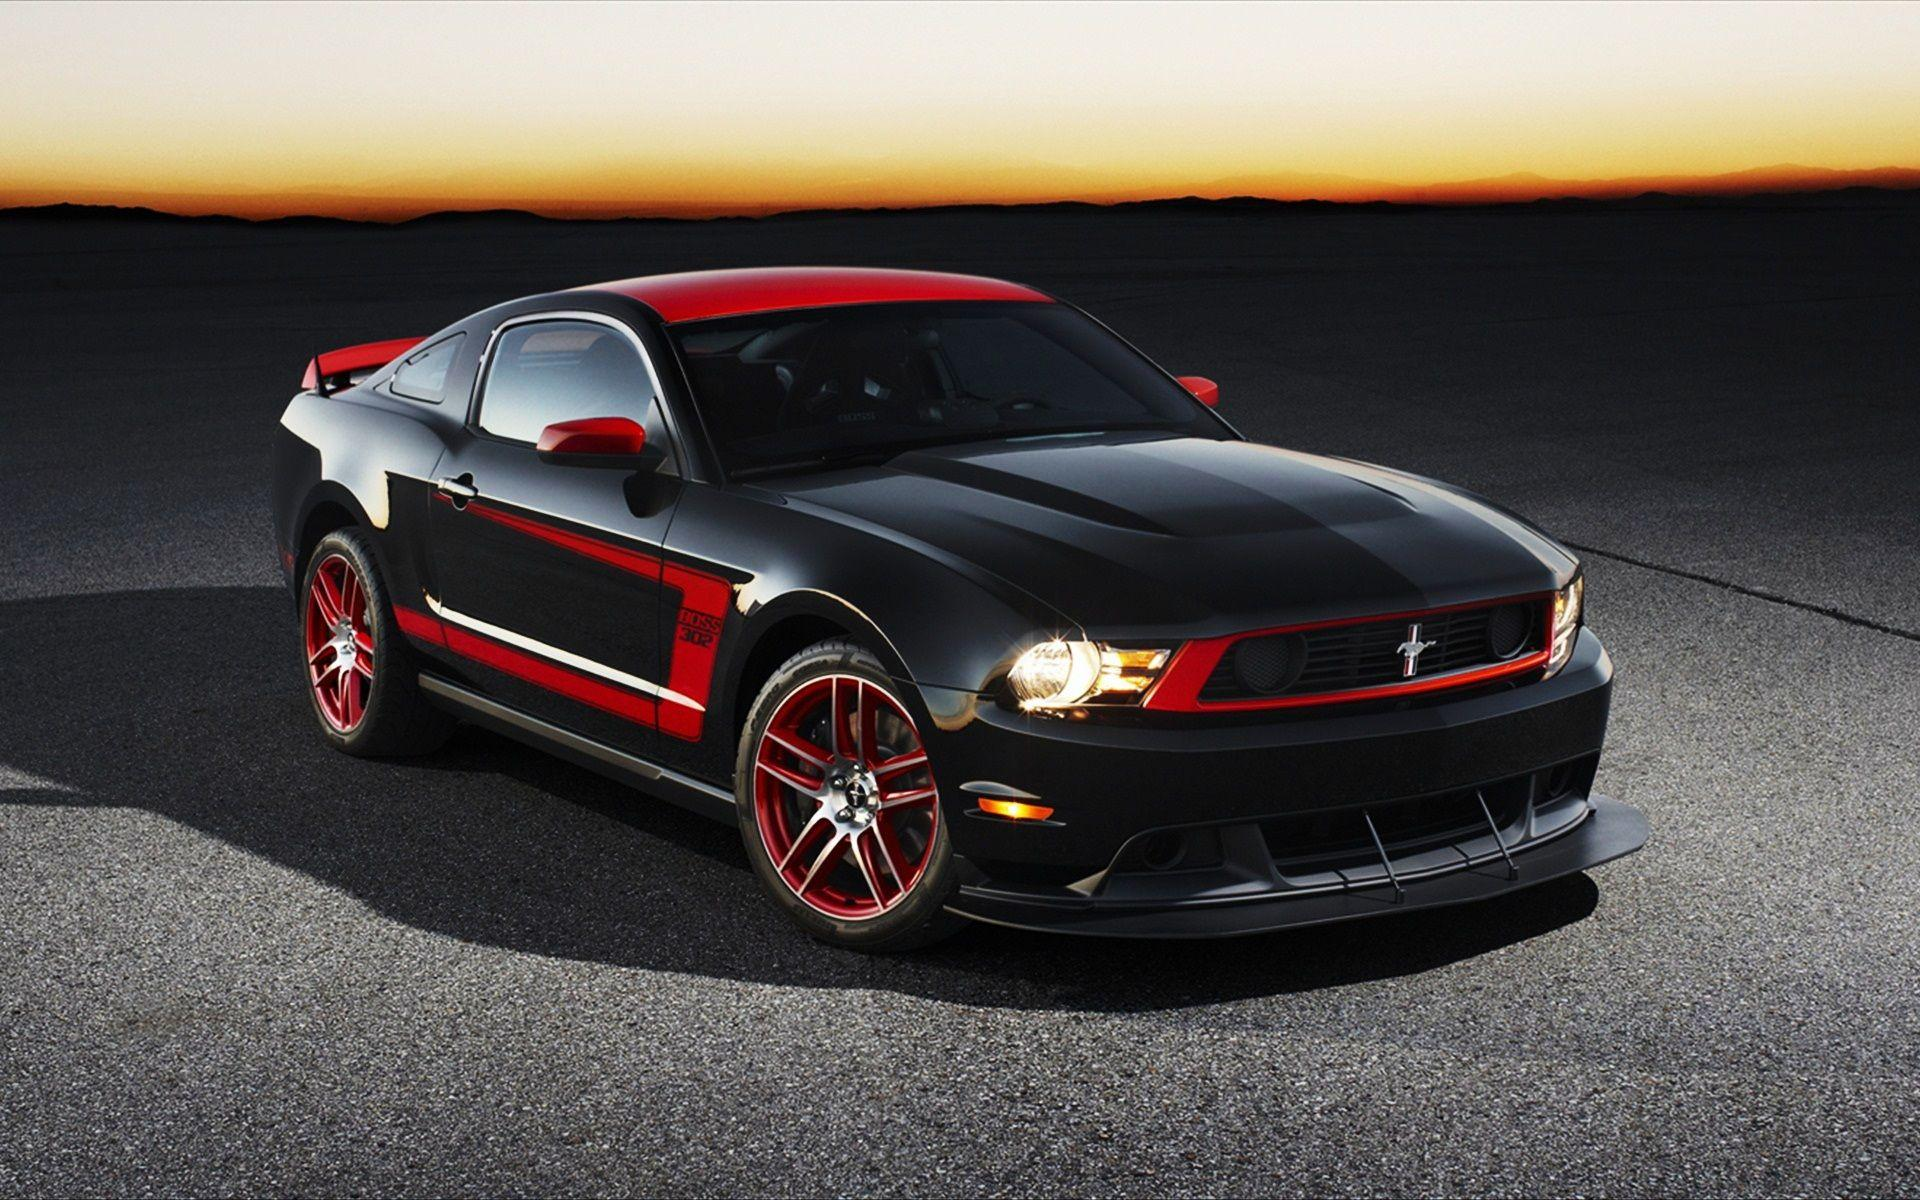 Mustang Wallpaper Hd Background Wallpaper 21 HD Wallpapers | www ...